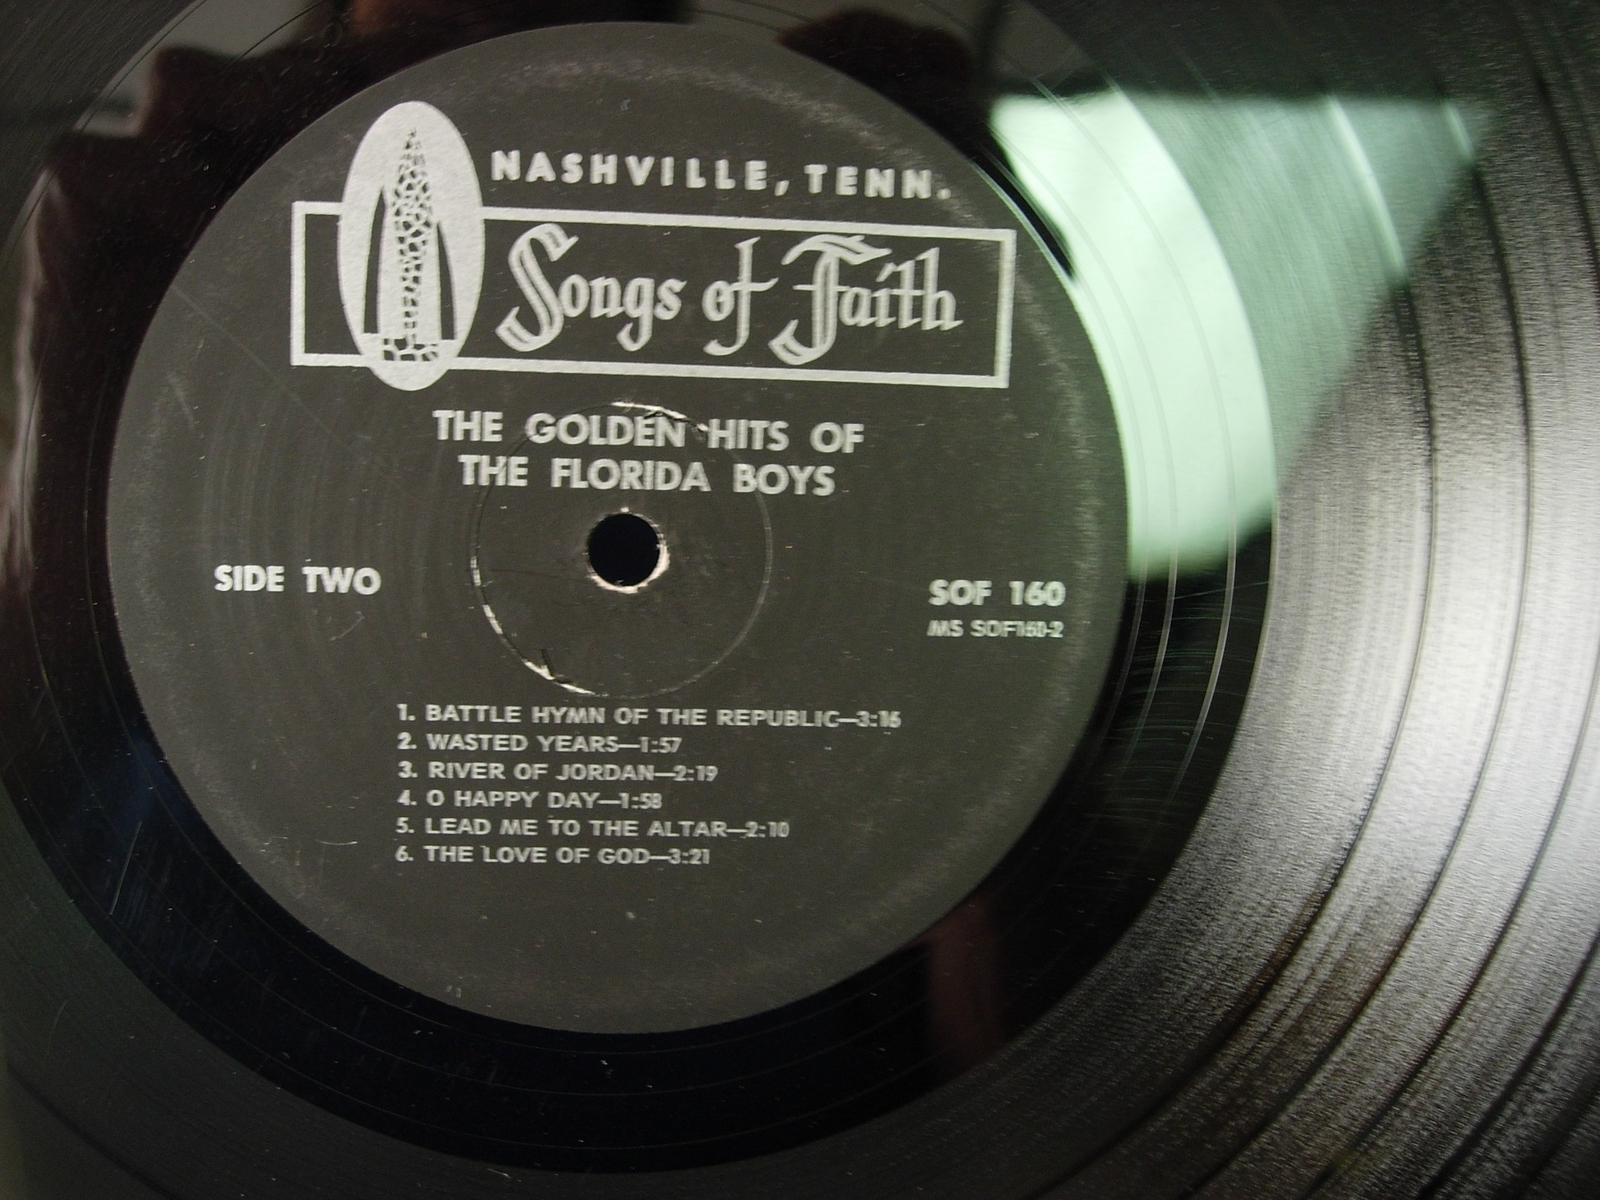 The Golden Hits of the FLORIDA BOYS - Songs of Faith SOF 160